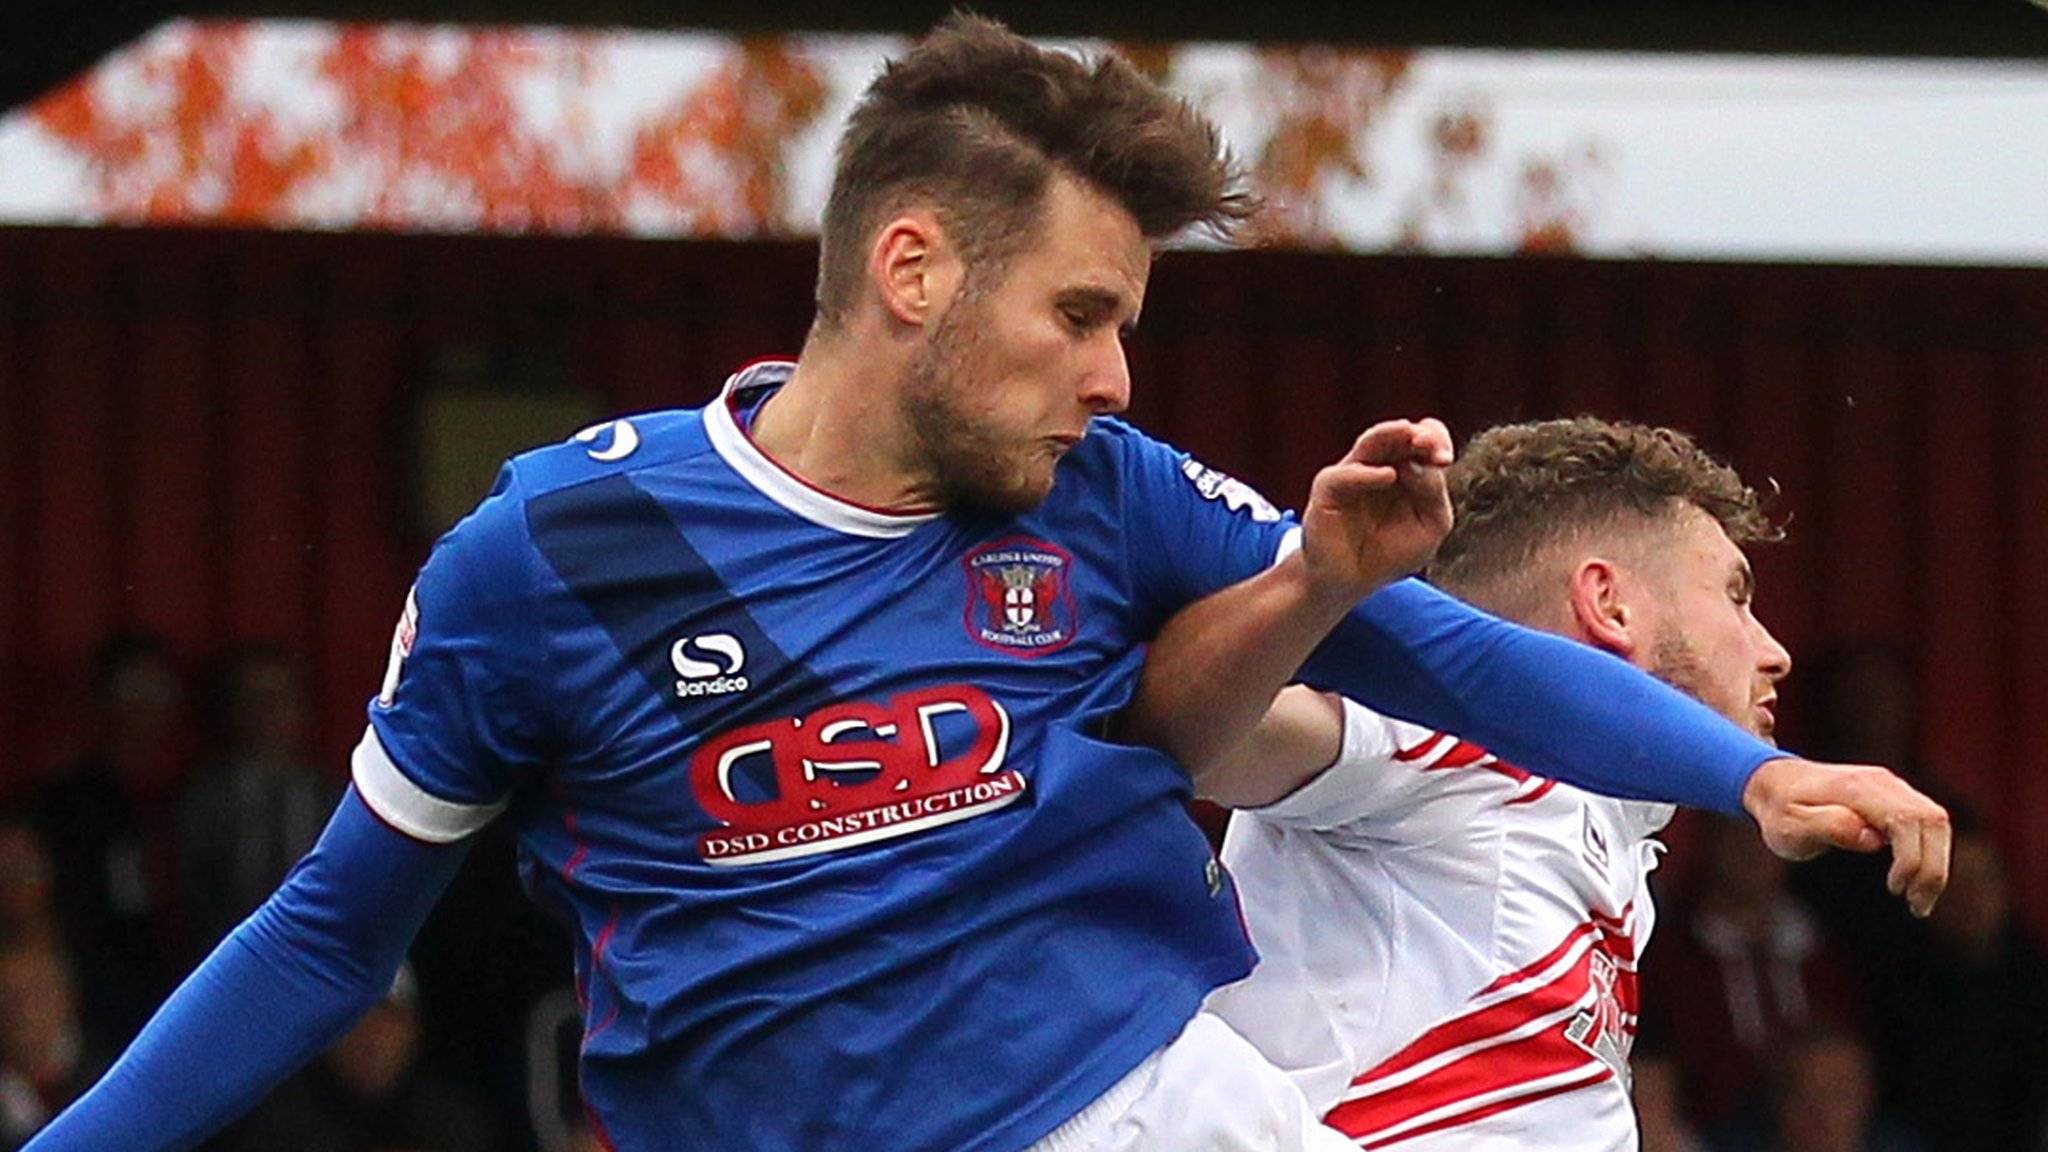 Macaulay Gillesphey: Carlisle United defender to leave club for 'different kind of challenge'